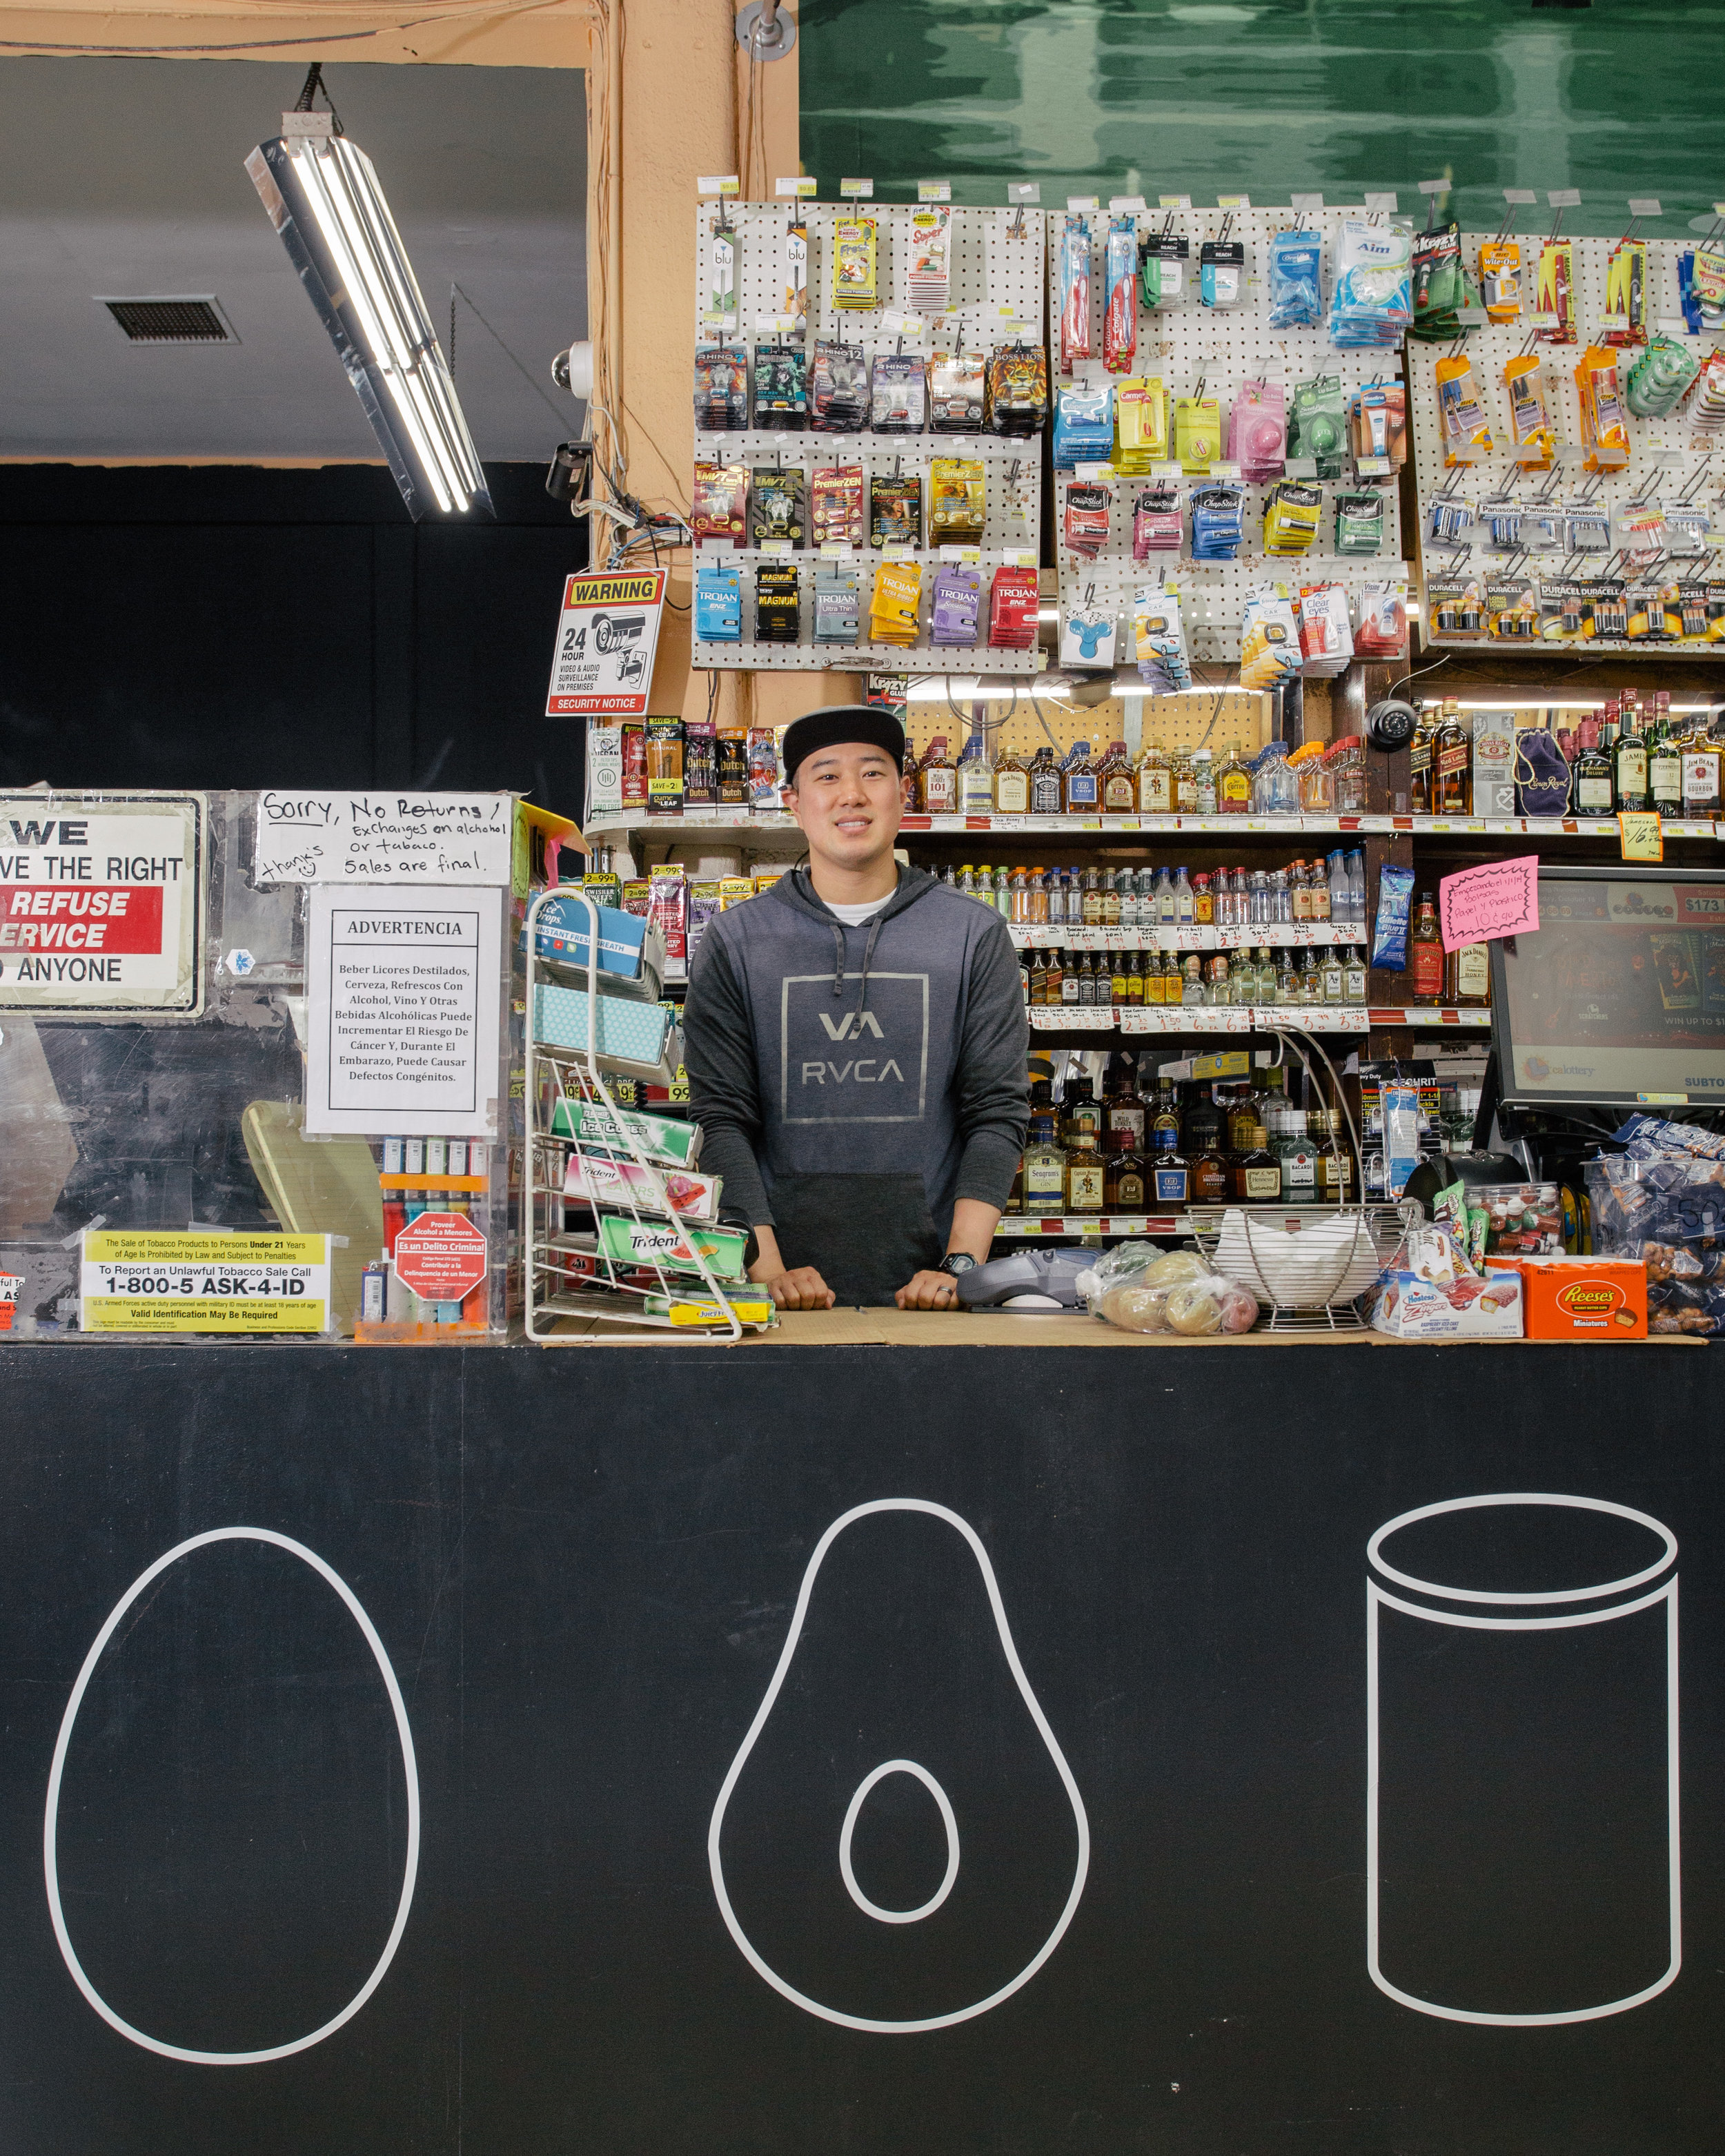 Andy Lee, owner of Sam's Corner Store, standing behind his new check-out counter, featuring healthy food icons. (This project was a part of the Healthy Neighborhood Market Network, in collaboration with the LA Food Policy Council.)